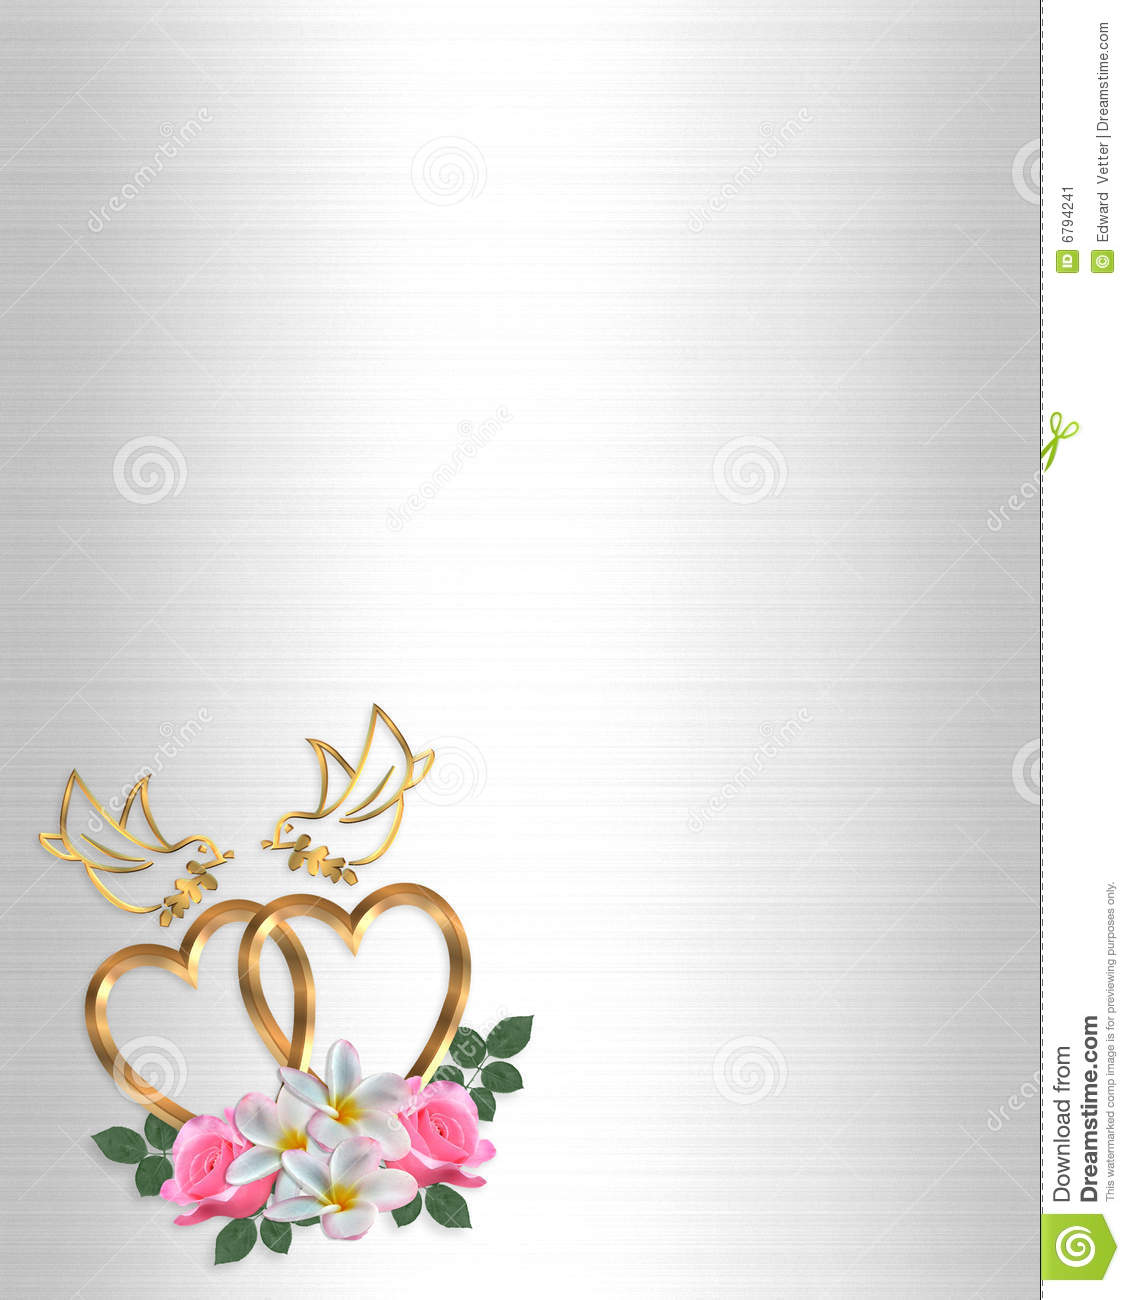 wedding invitation gold heart and doves stock illustration